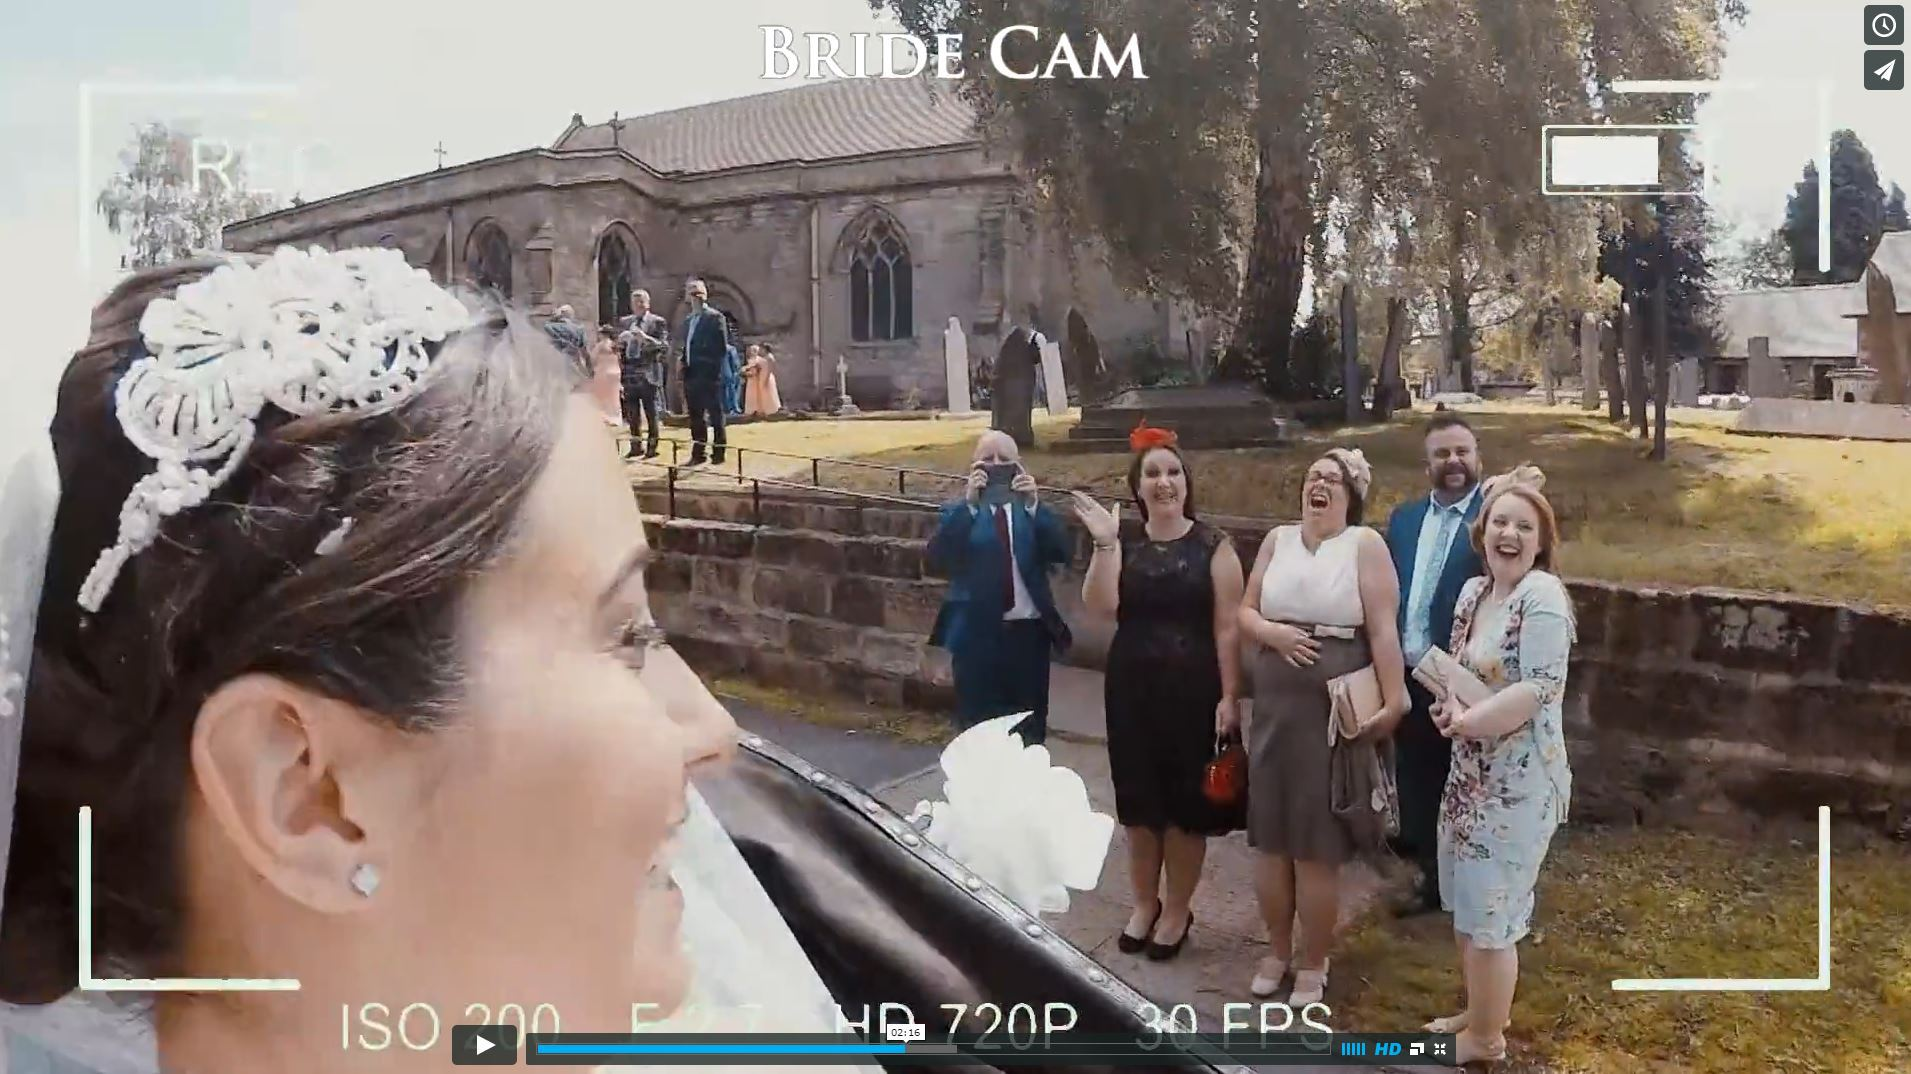 'Bridecam' revolutionising wedding videos